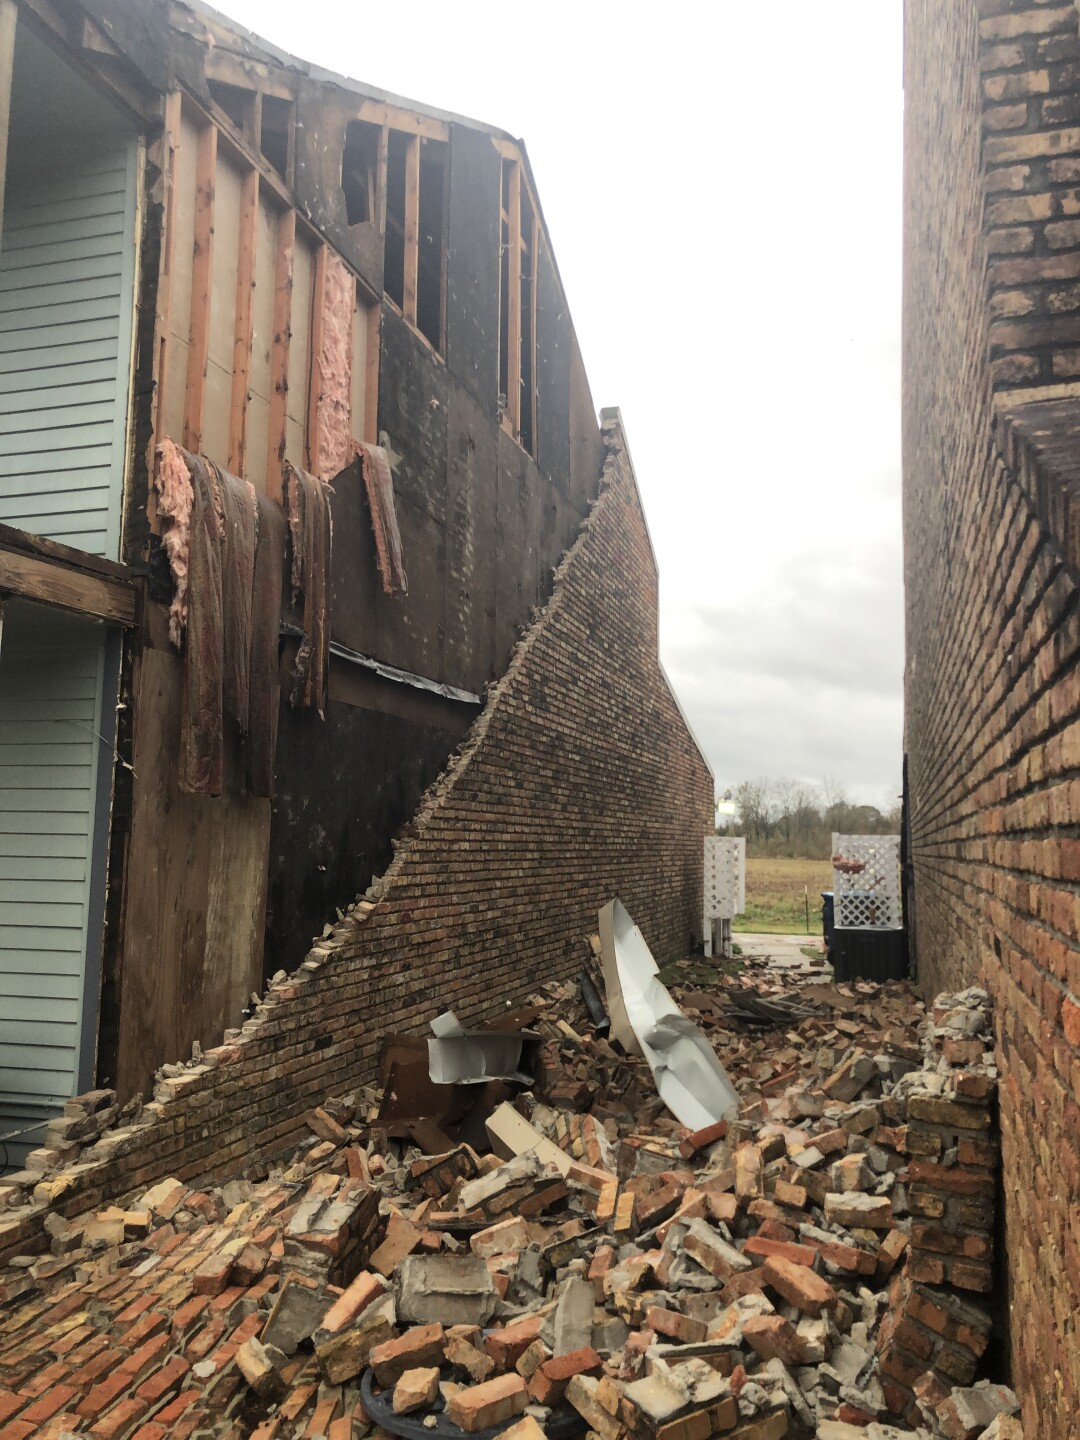 Brick wall collapsed